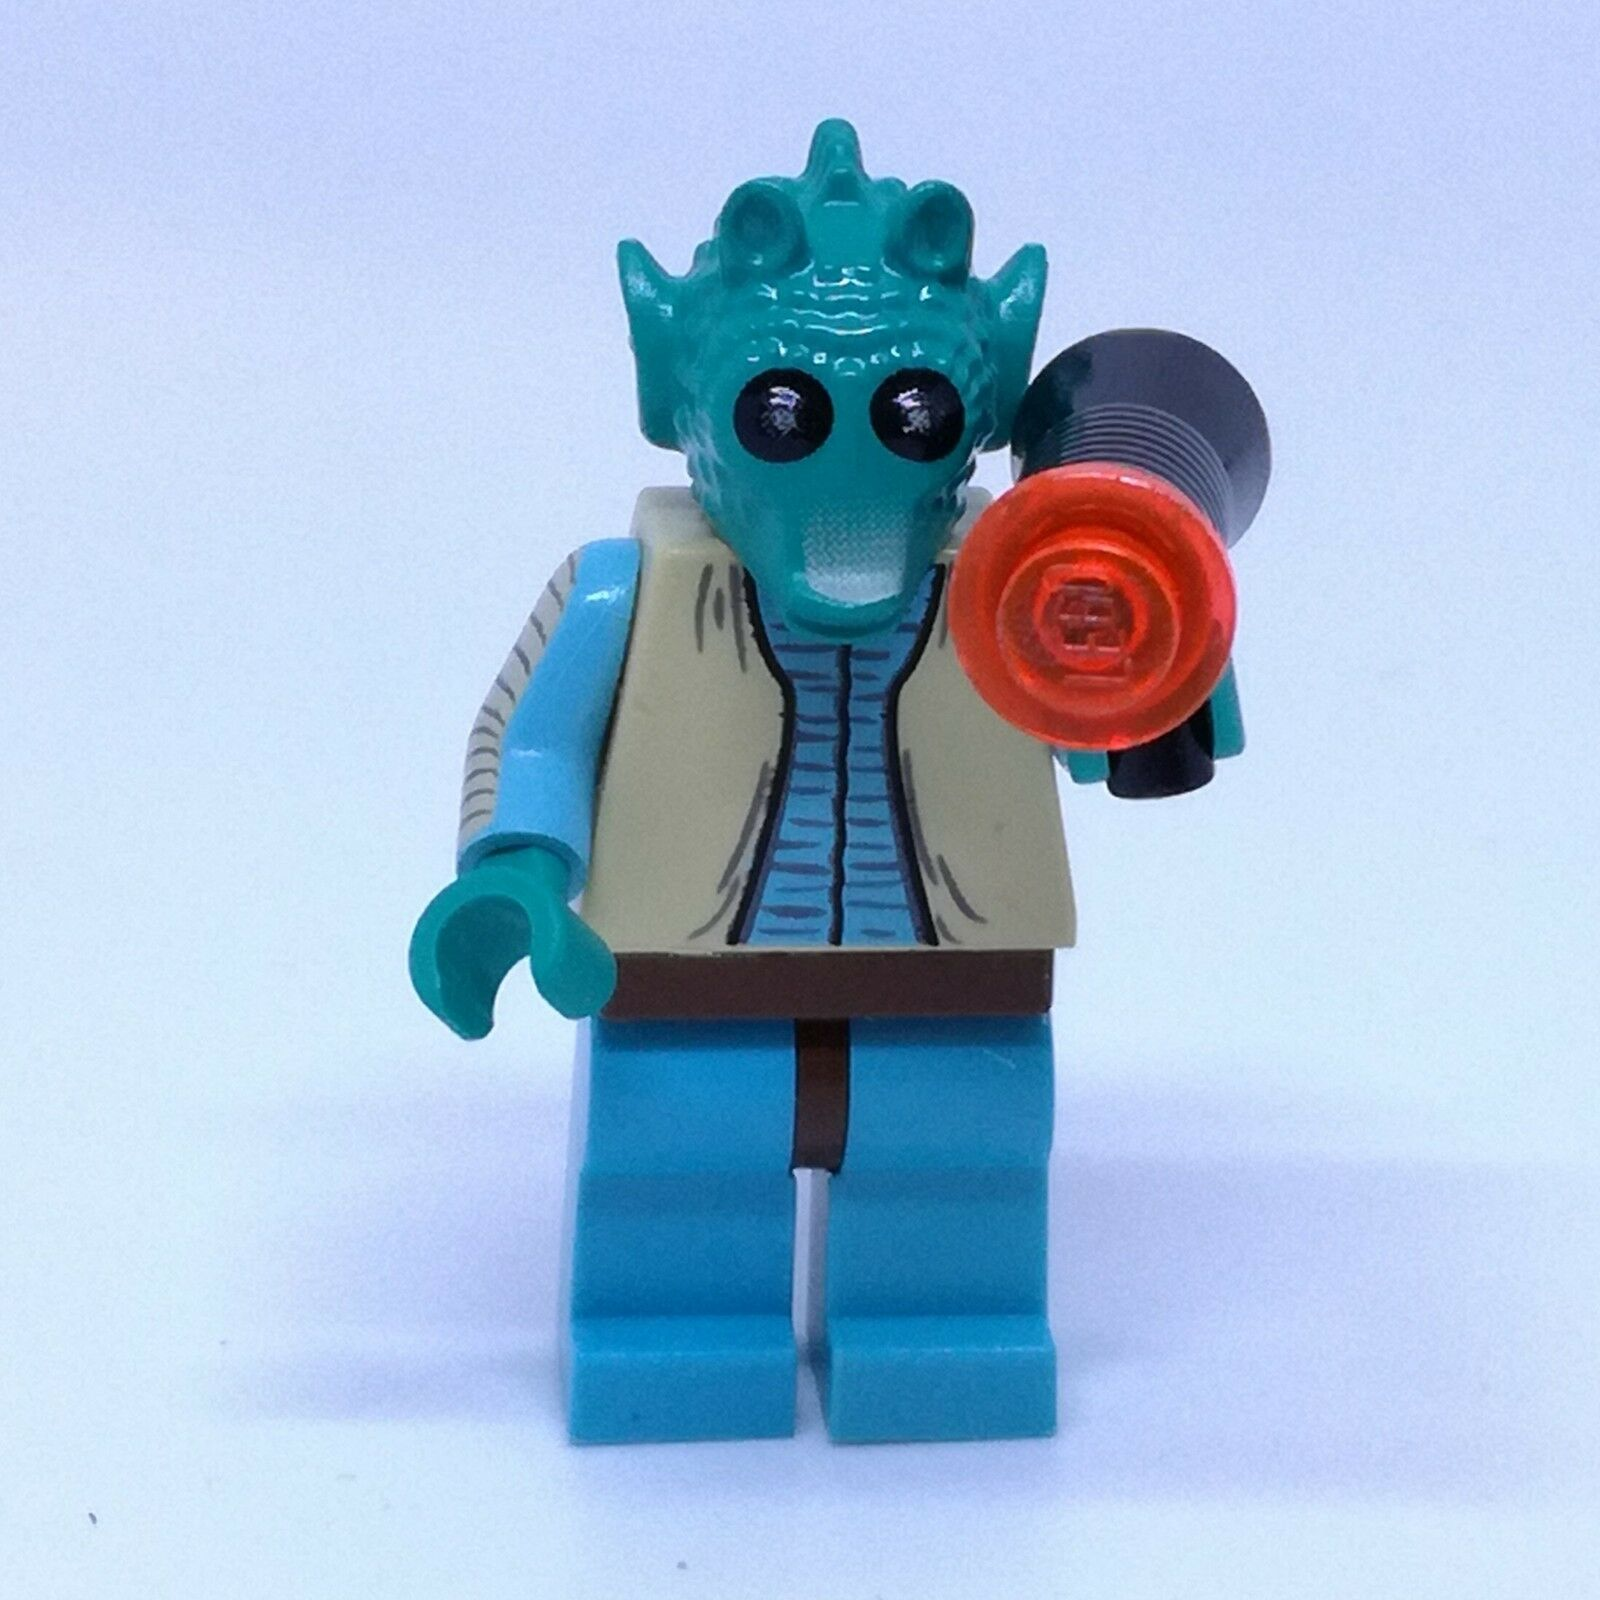 Lego Star Wars - Original Greedo with Blaster - From 4501 Mos Eisley Cantina